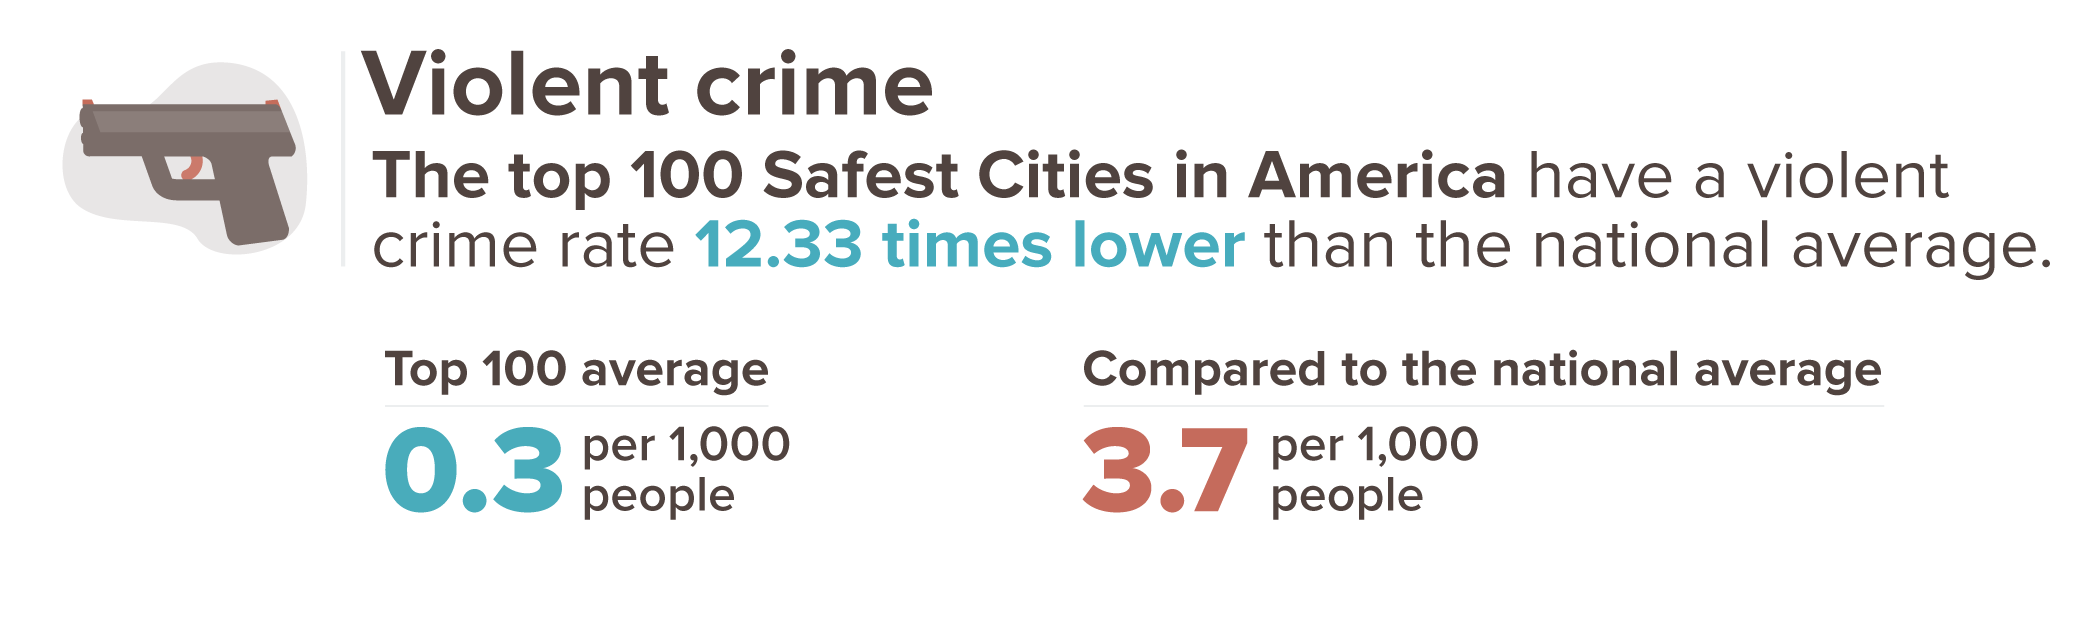 Graphic showing that violent crime is 12.33 times lower in the safest cities than the national average of 3.7 per 1,000.